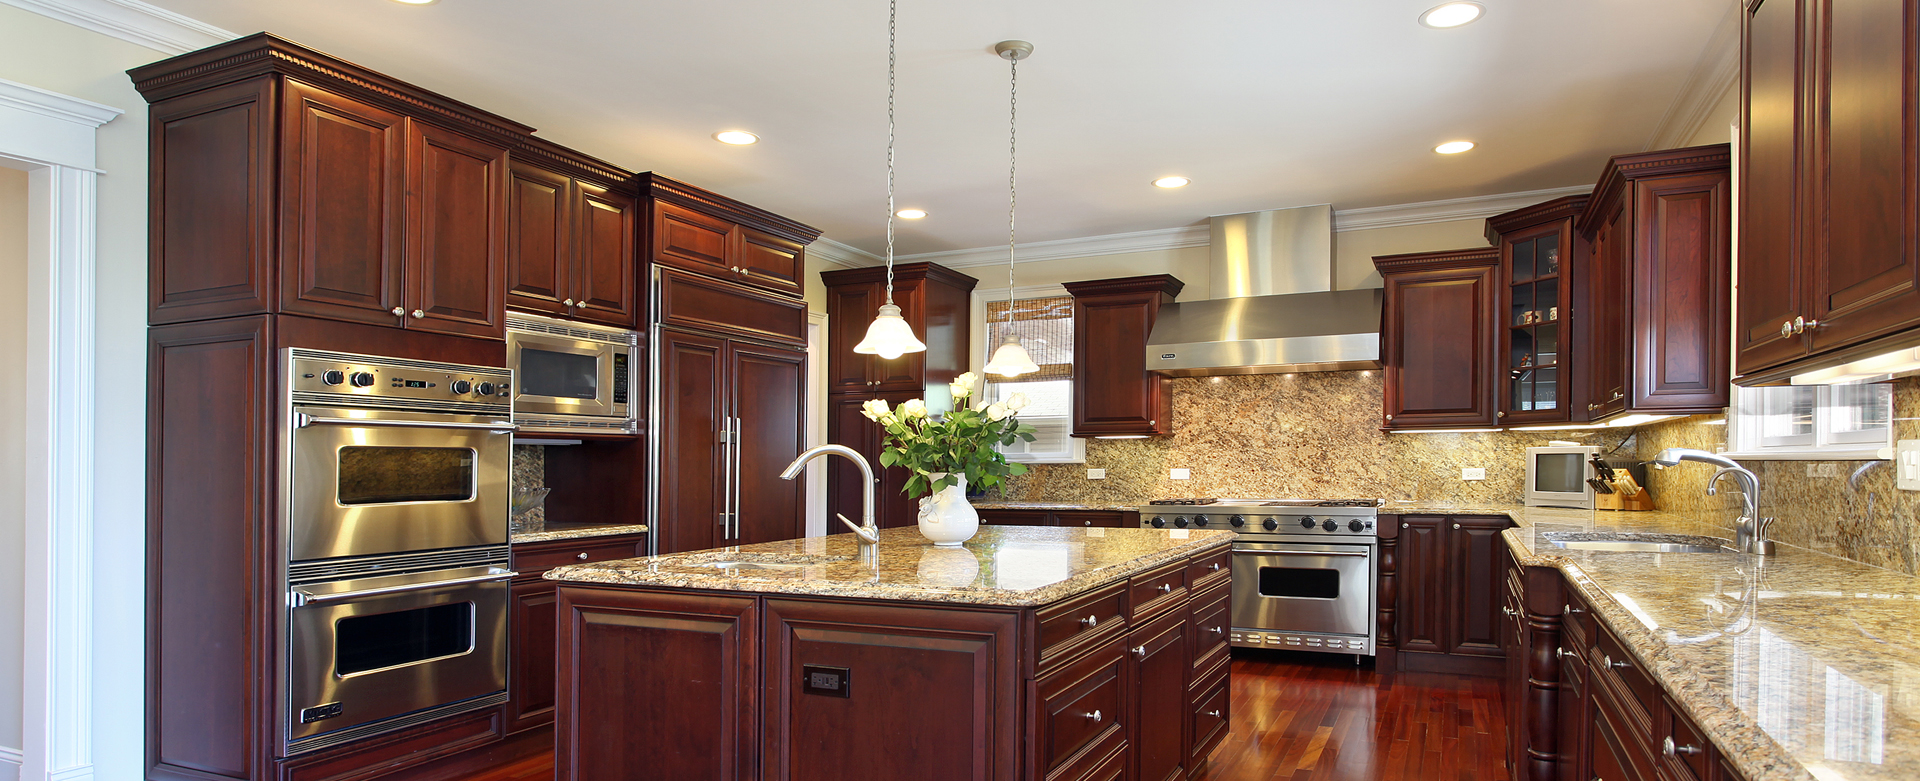 Tequesta Kitchen Cabinets